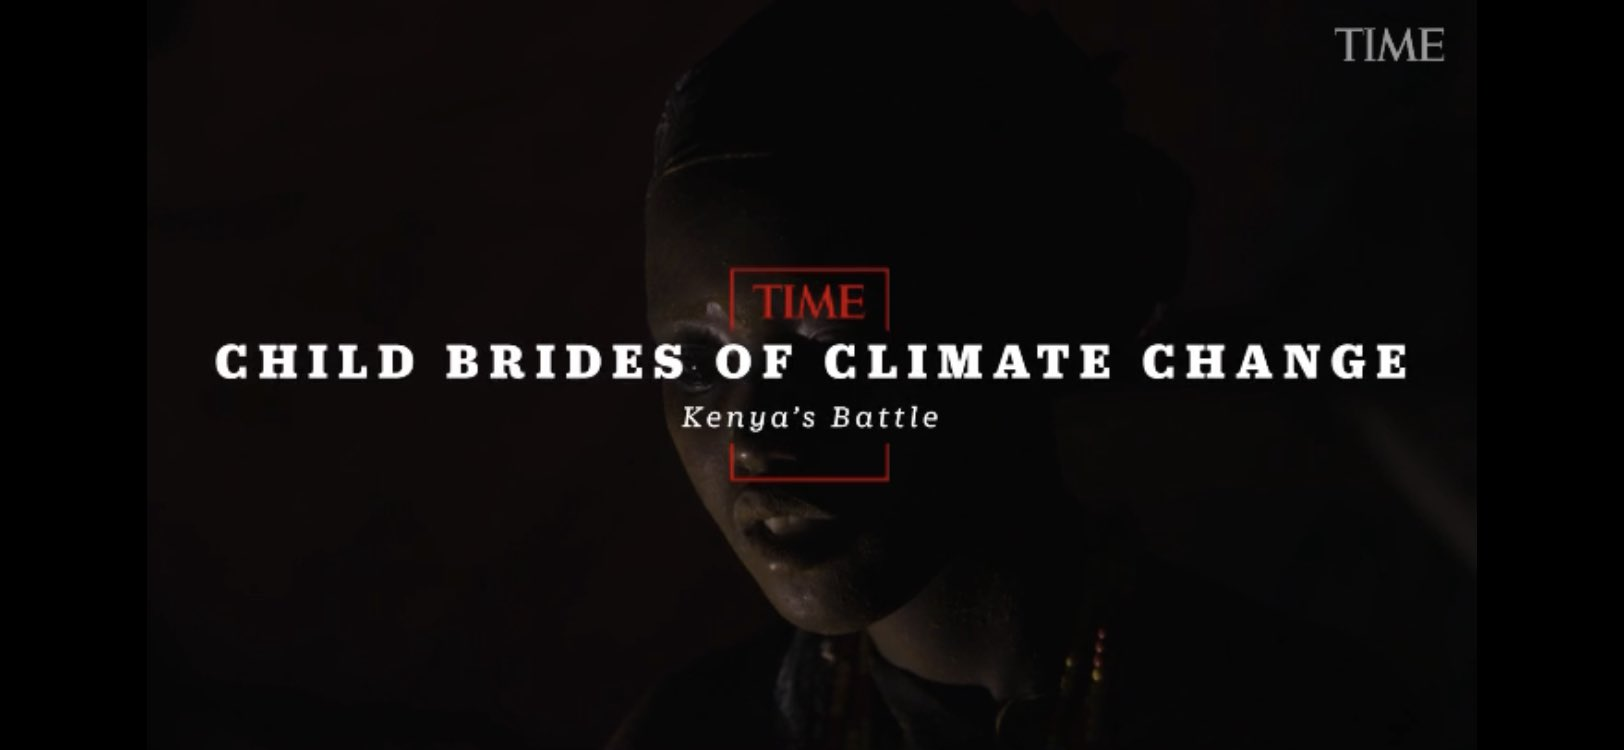 The Child Brides of Climate Change – TIME Magazine (image)